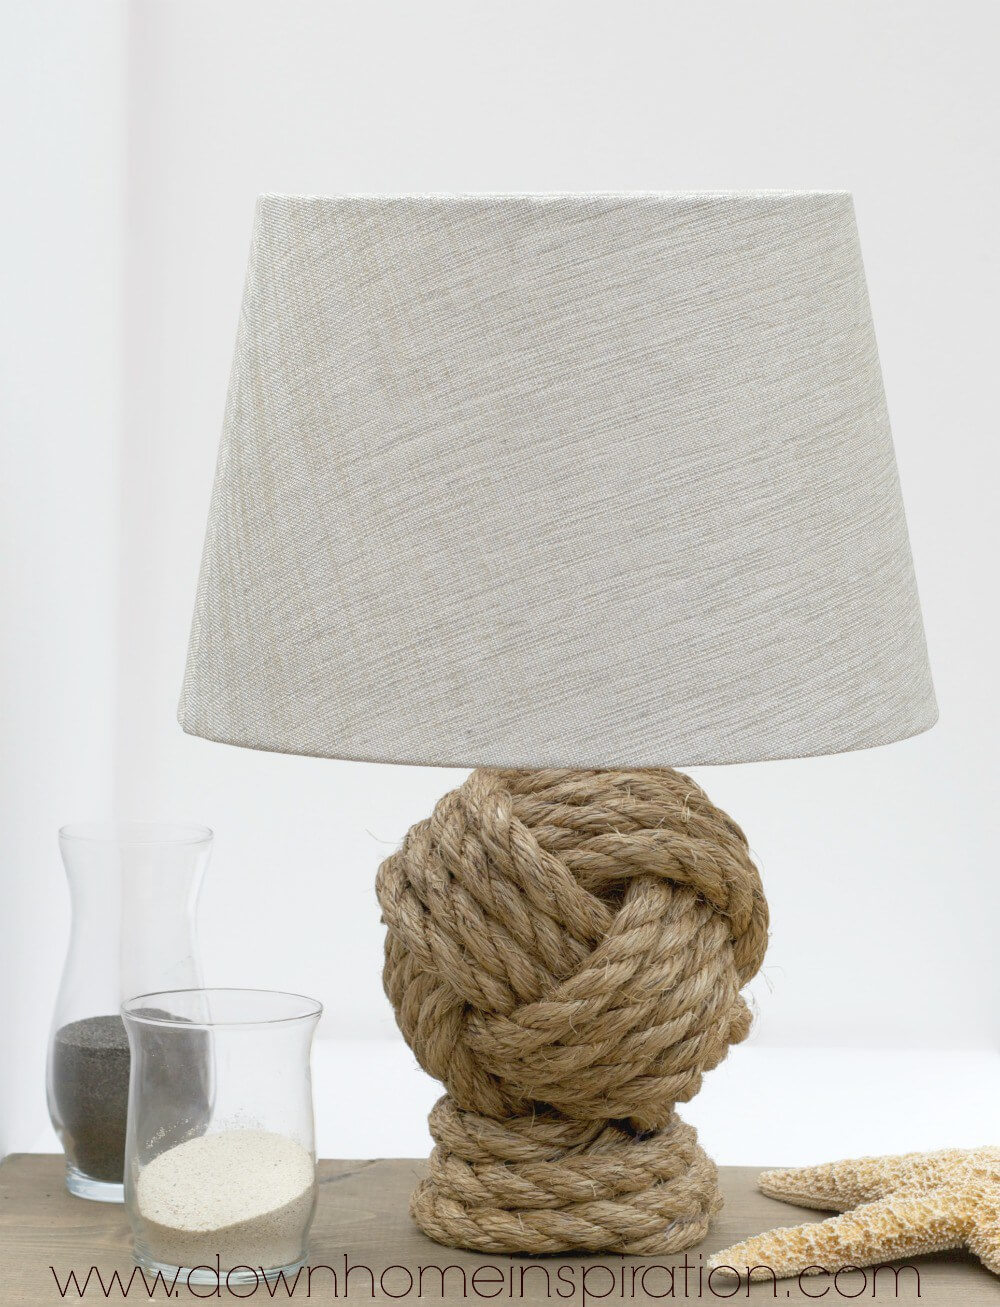 A Nautical Knot Lamp at the Shore